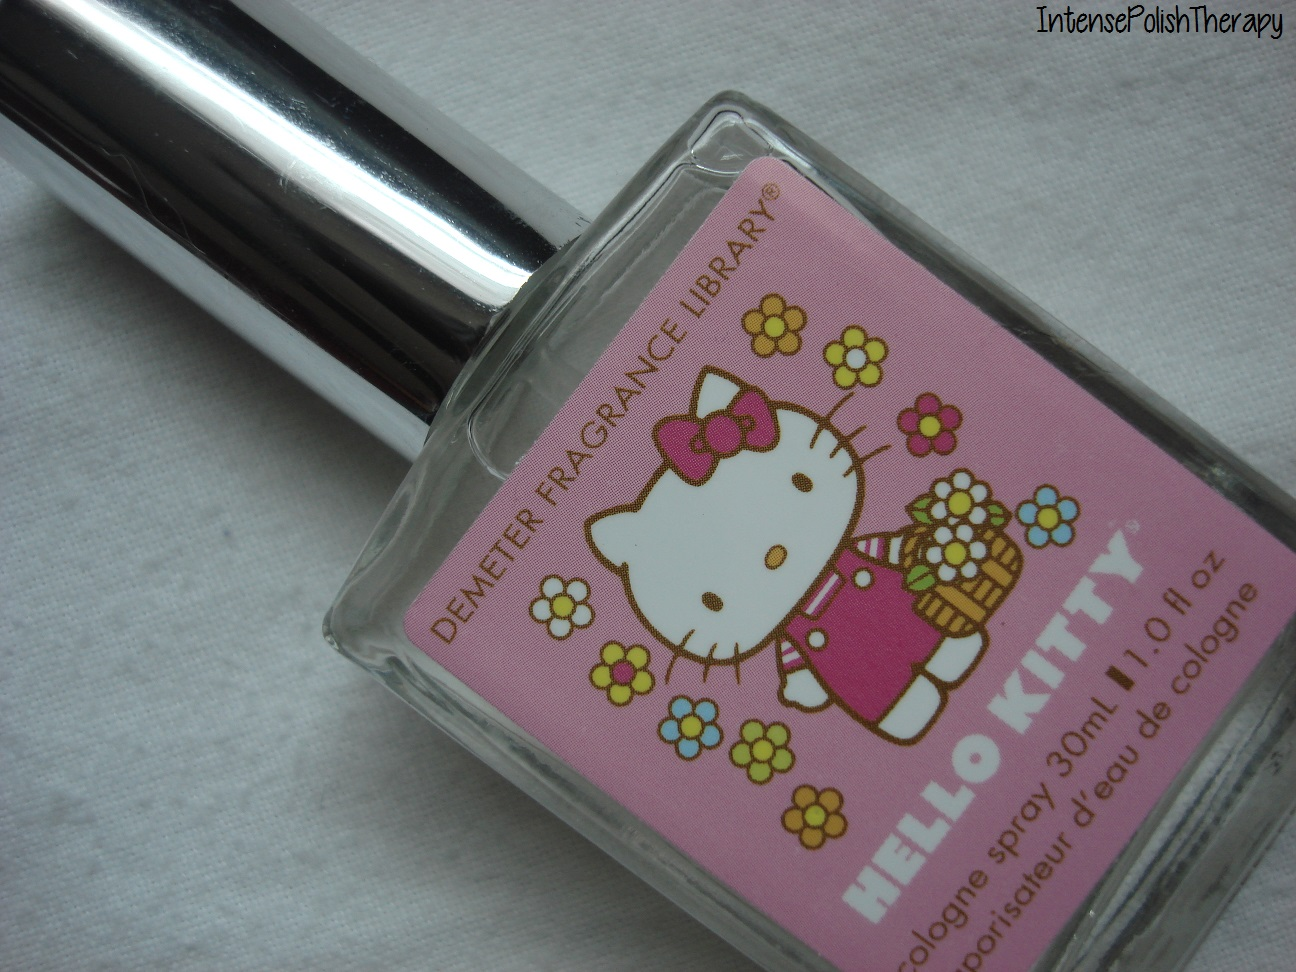 Demeter Fragrance Library - Hello Kitty Spring